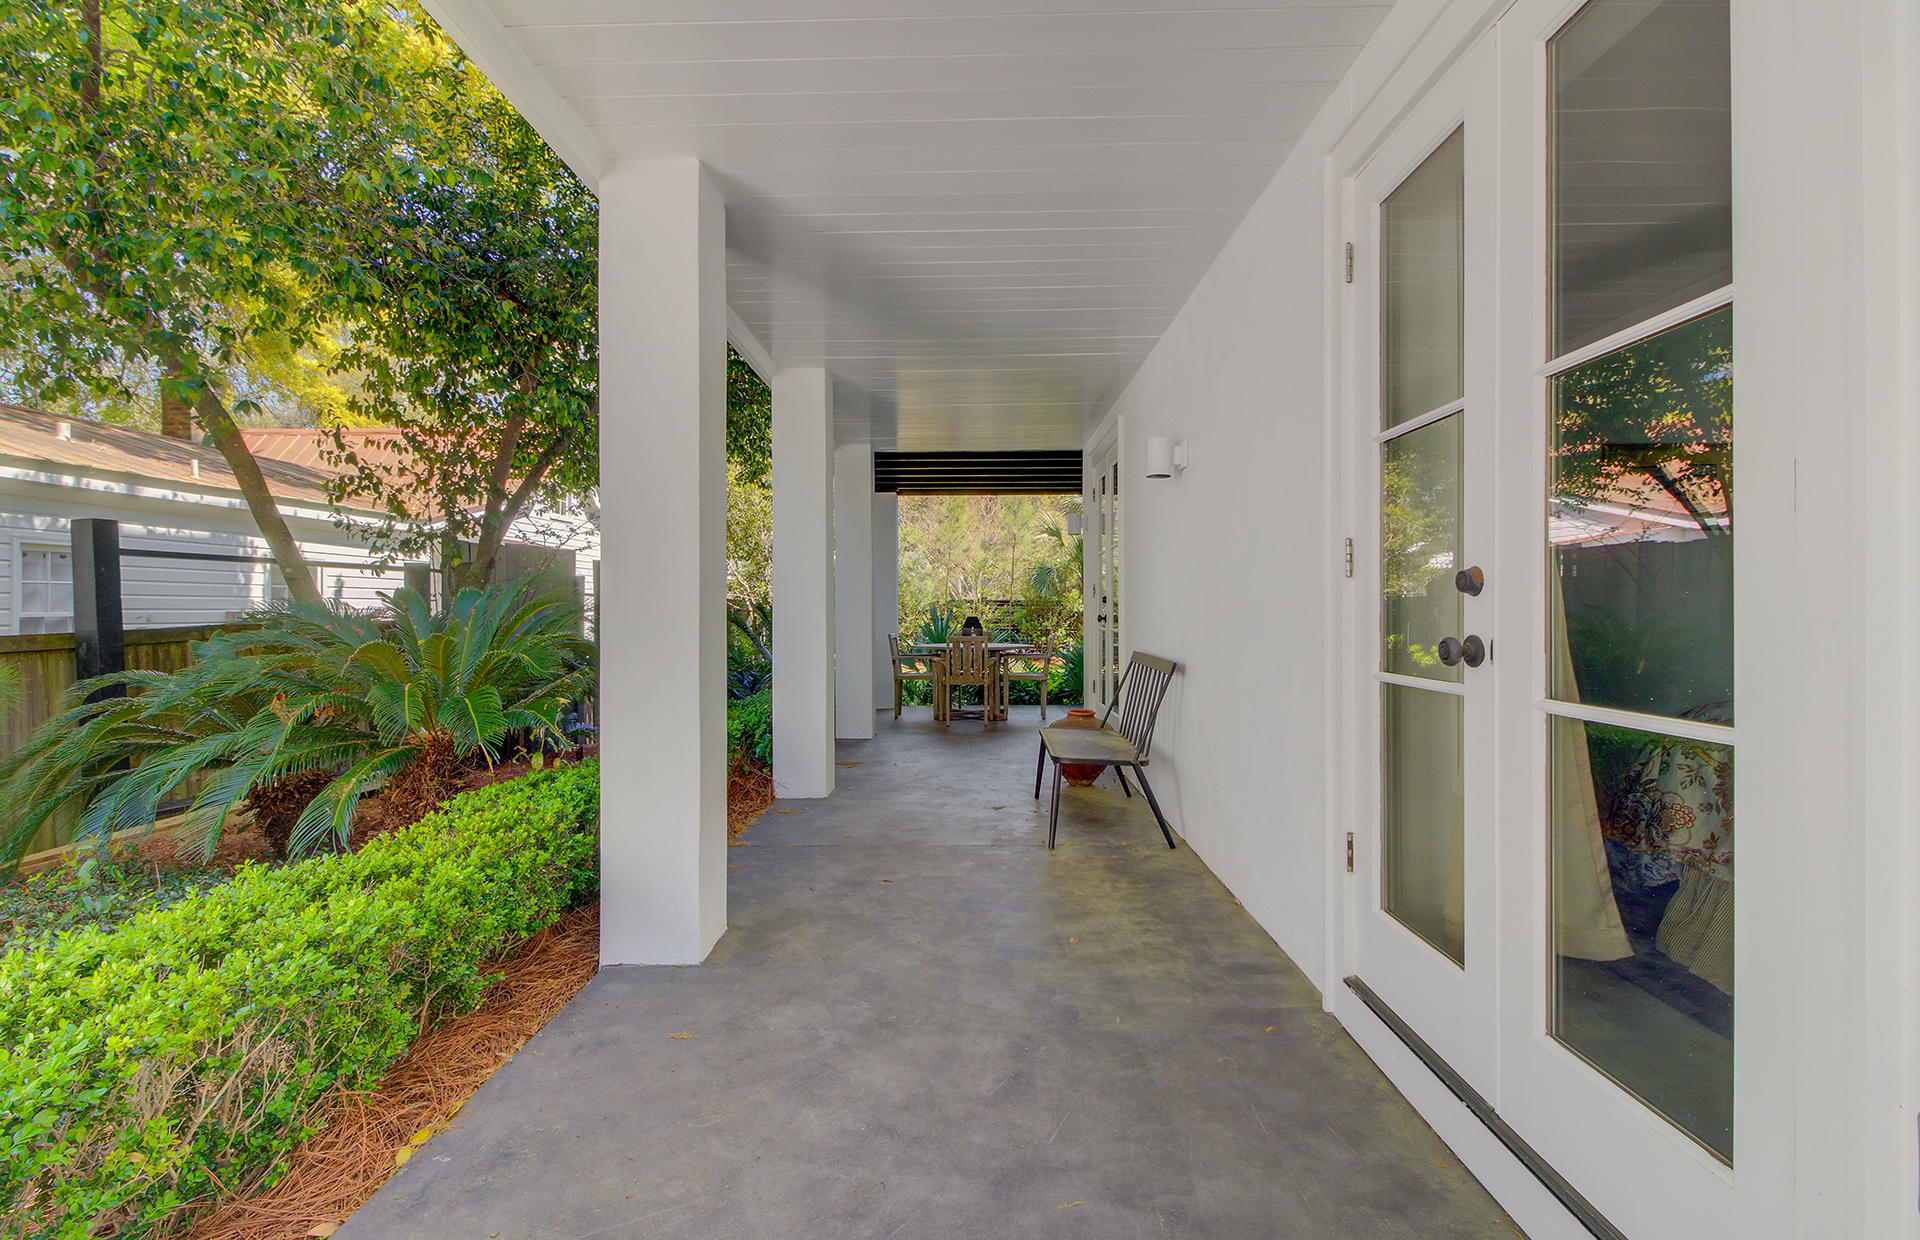 Old Mt Pleasant Homes For Sale - 209 Greenwich, Mount Pleasant, SC - 24